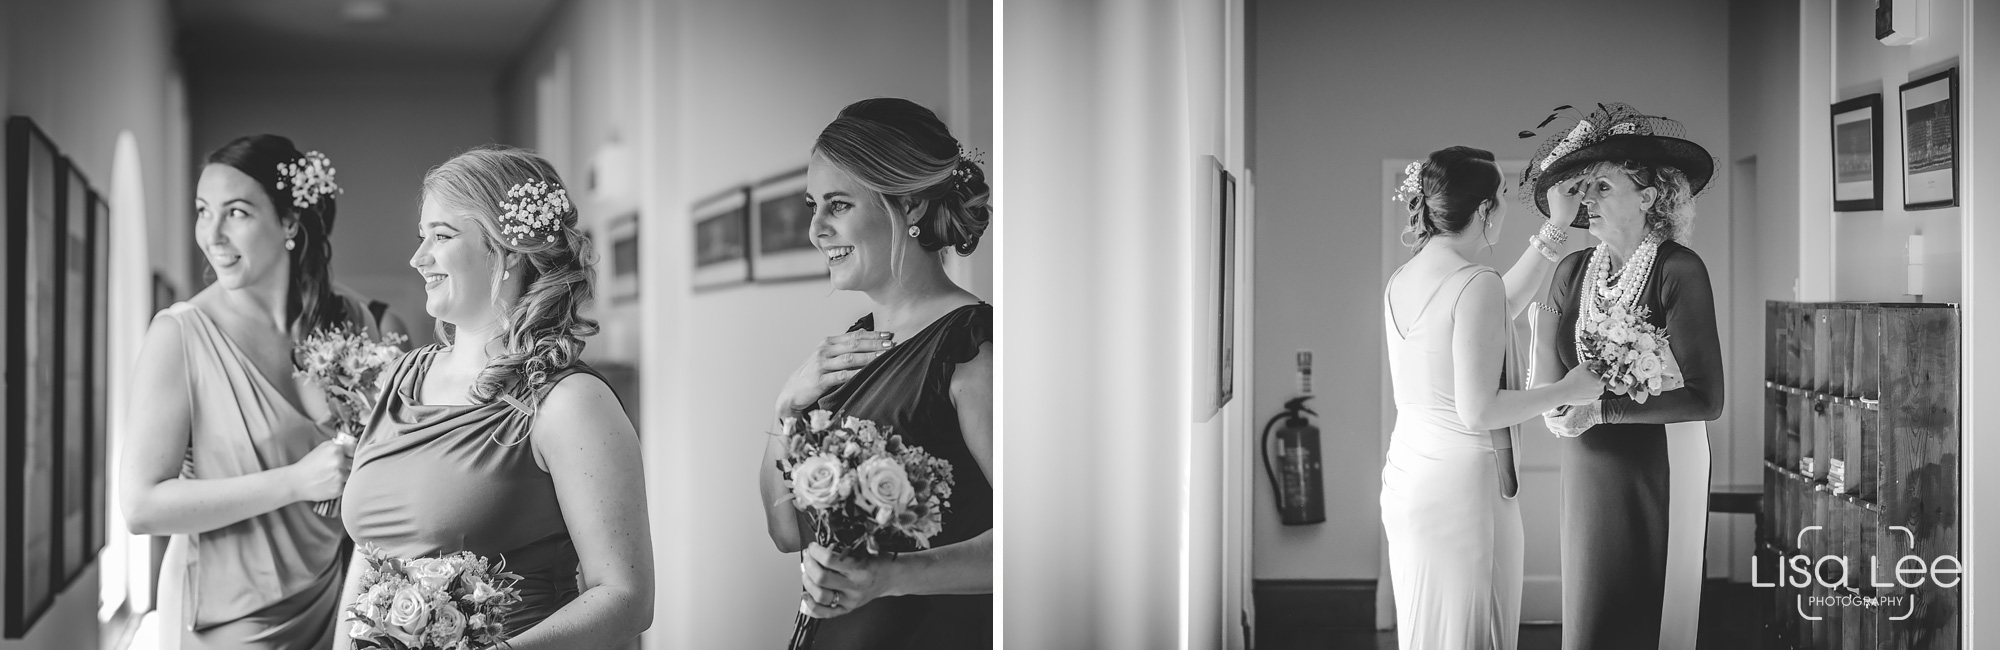 lisa-lee-wedding-photography-ceremony-talbot-heath-13.jpg